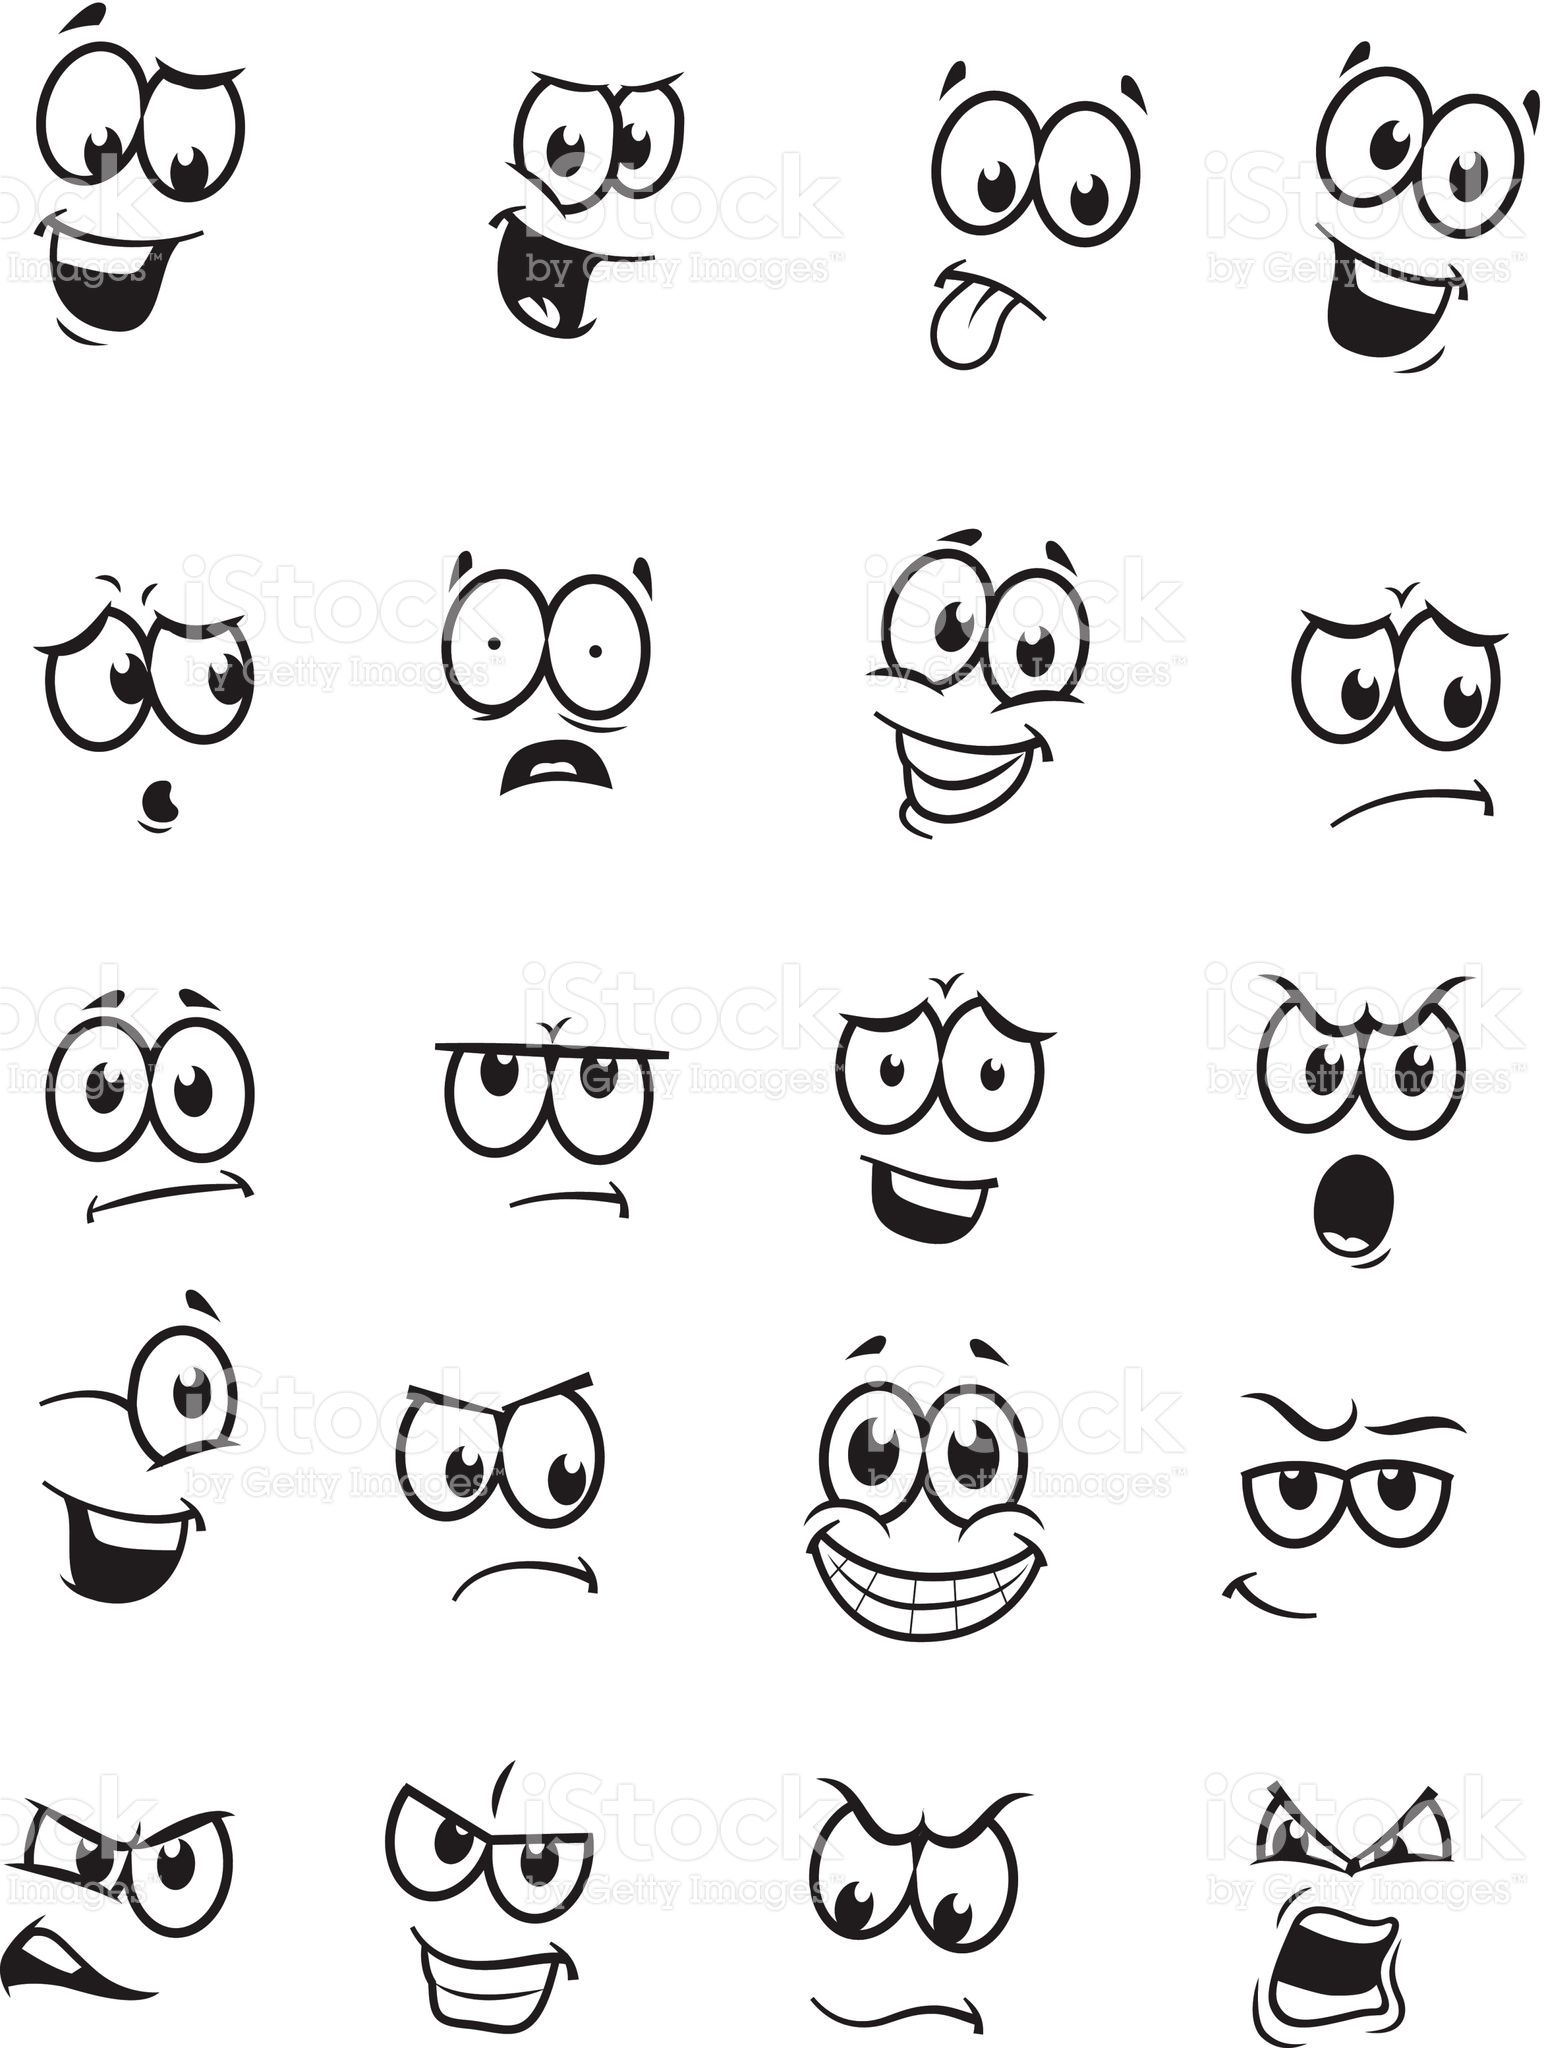 Free Facial Drawings Showing Different Emotions